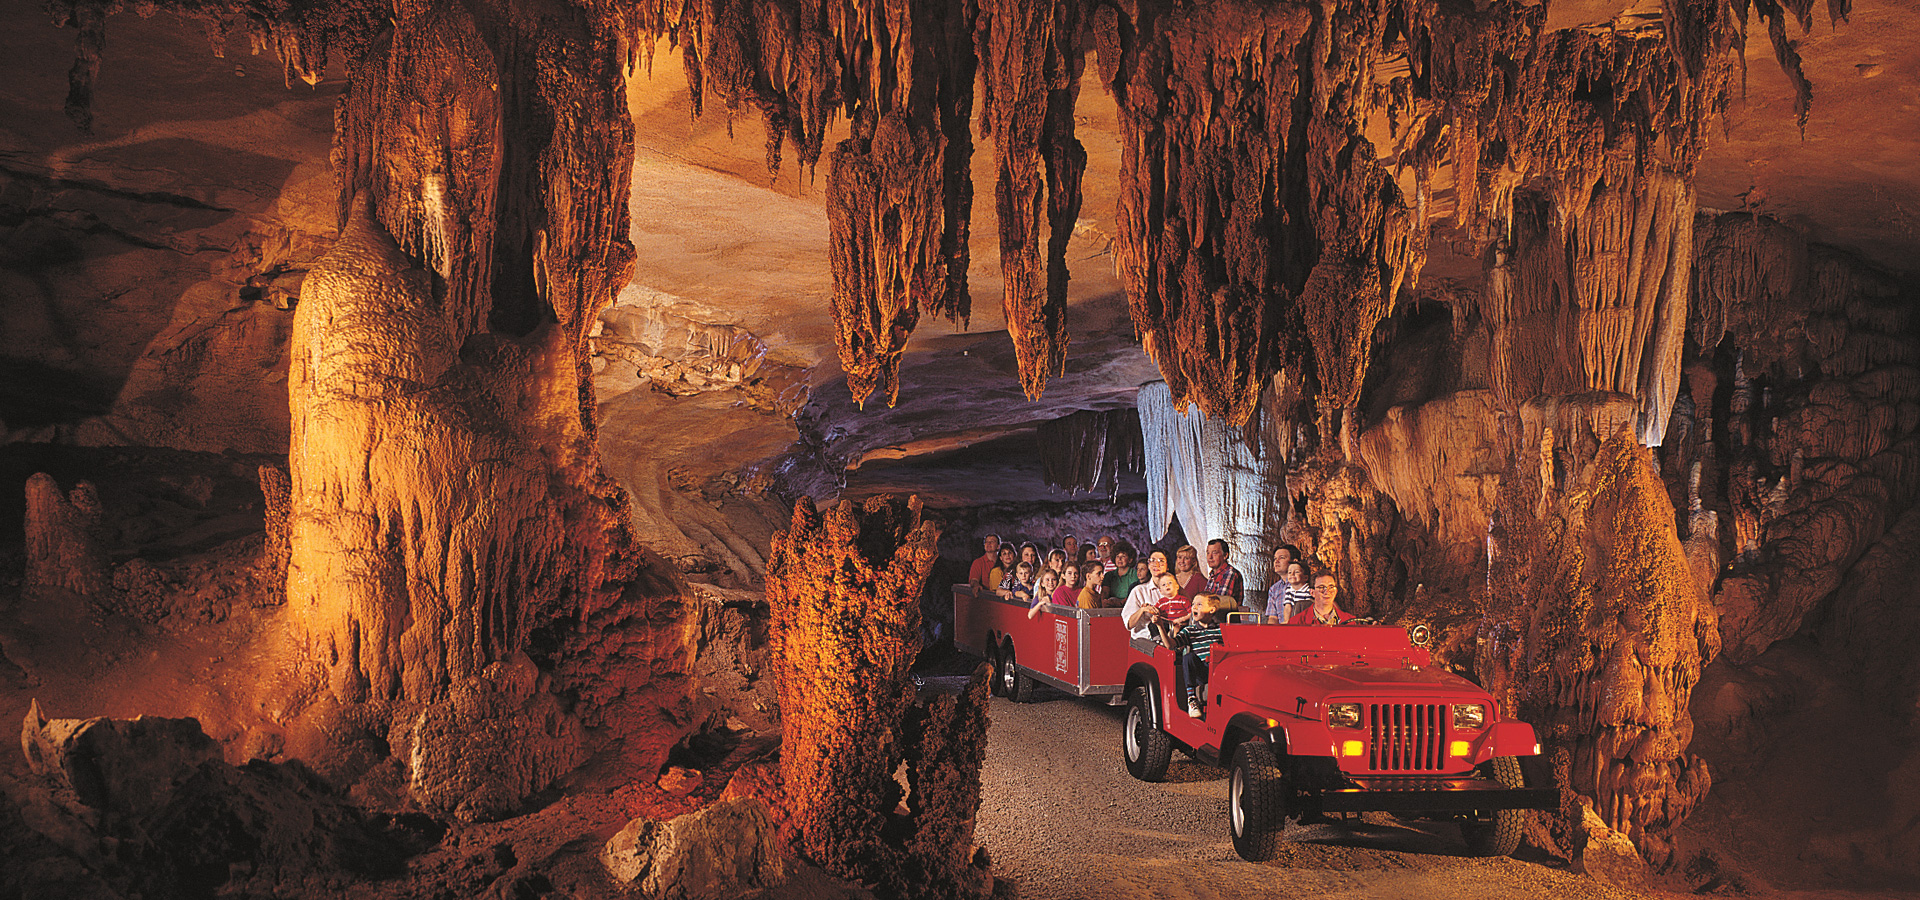 As a long-established tourist attraction, Fantastic Caverns stands out in the Springfield area